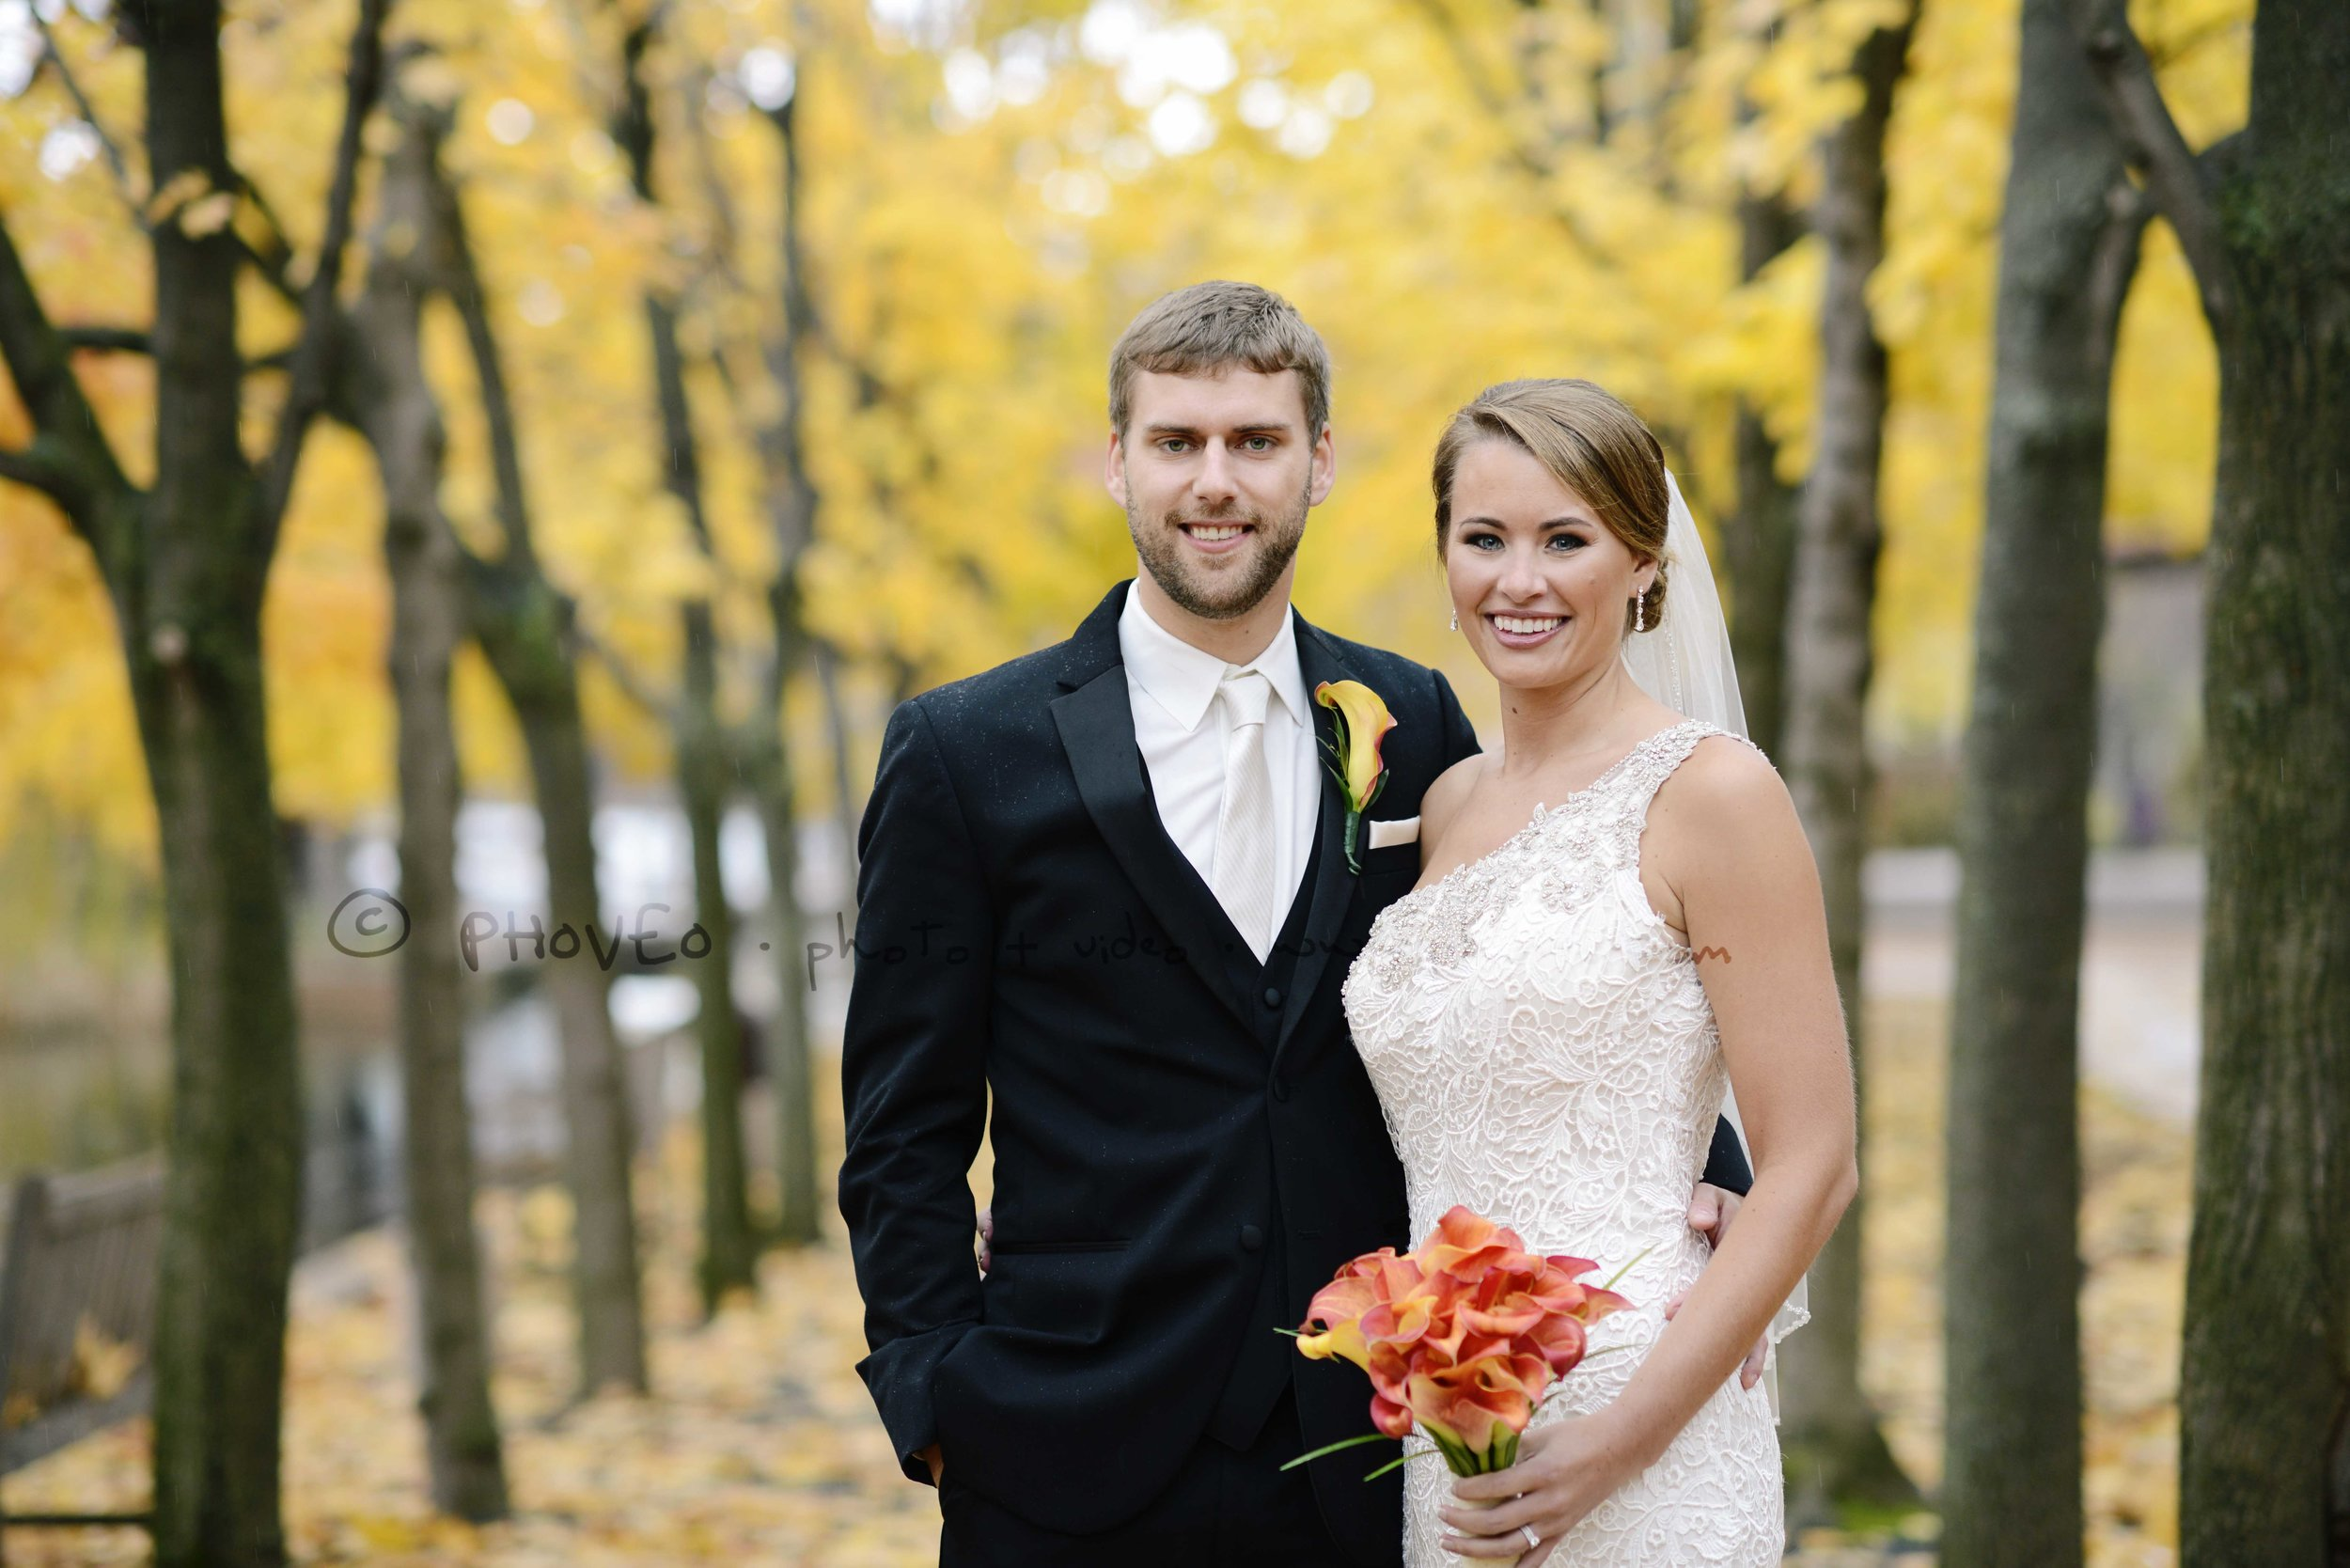 Christine + Luke | Prior Lake, MN